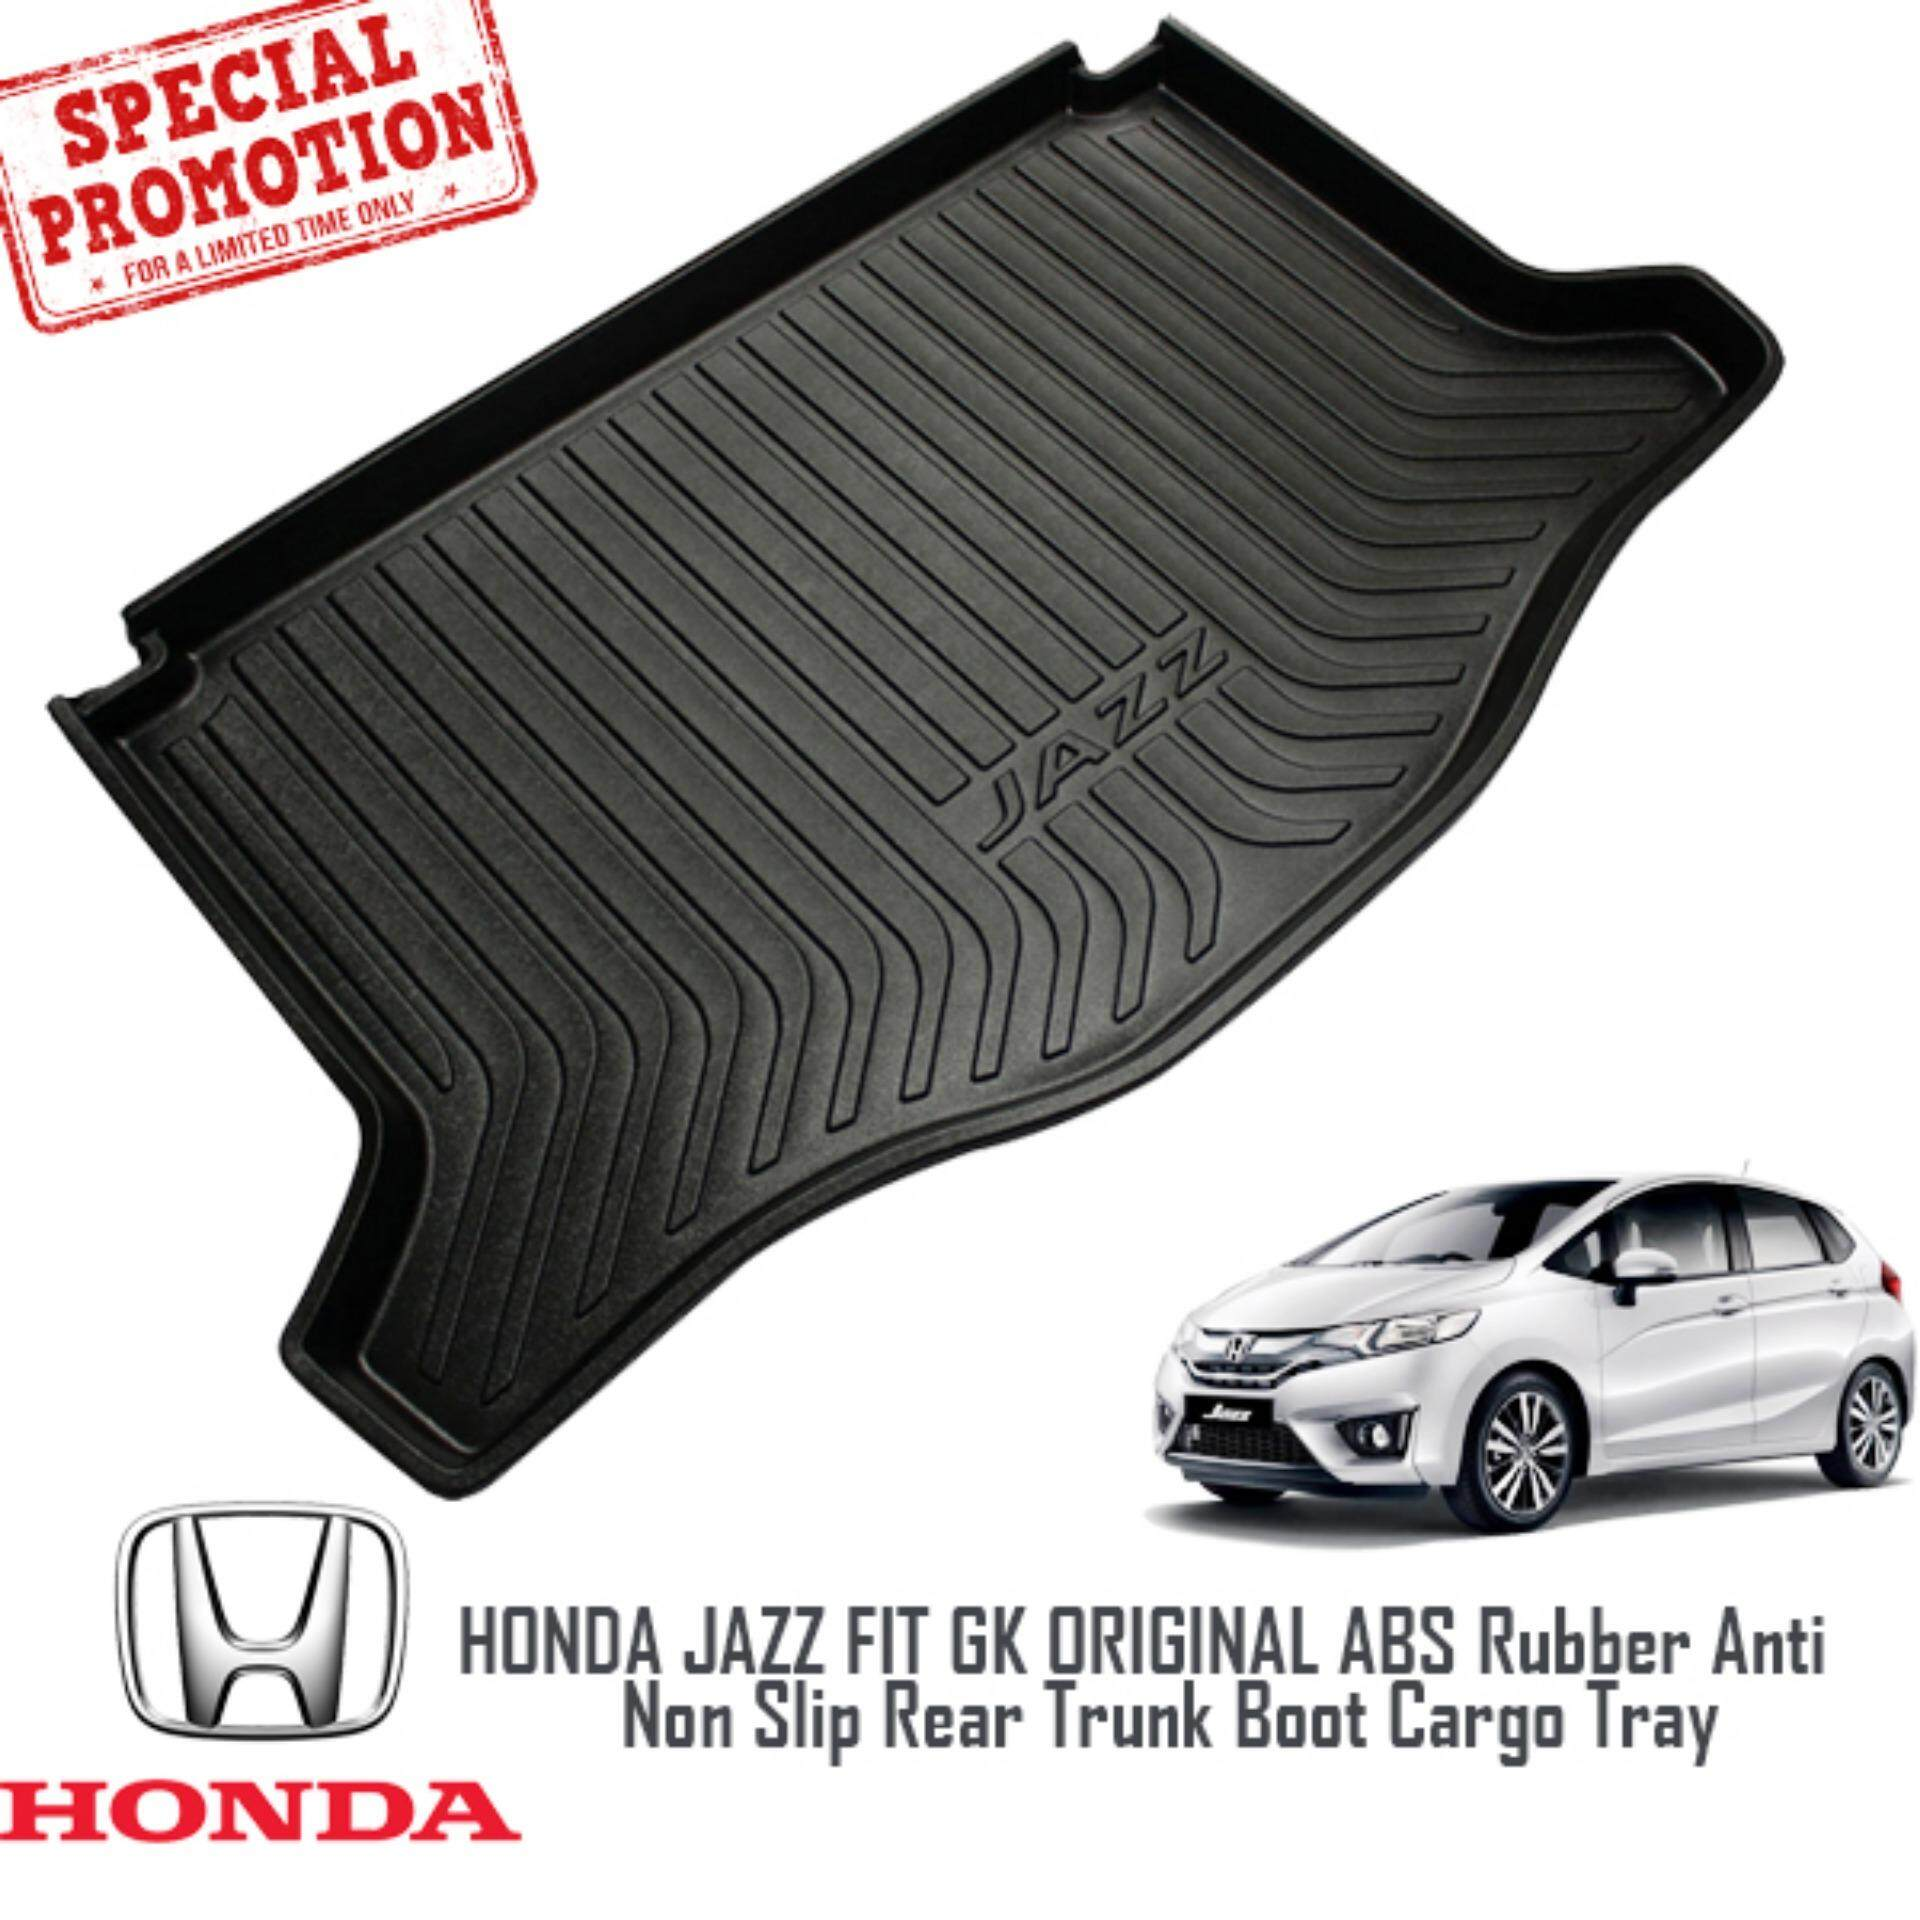 HONDA JAZZ GK 2014 - 2016: ORIGINAL ABS Rubber Anti Non Slip RearTrunk Boot Cargo Tray Made in Japan